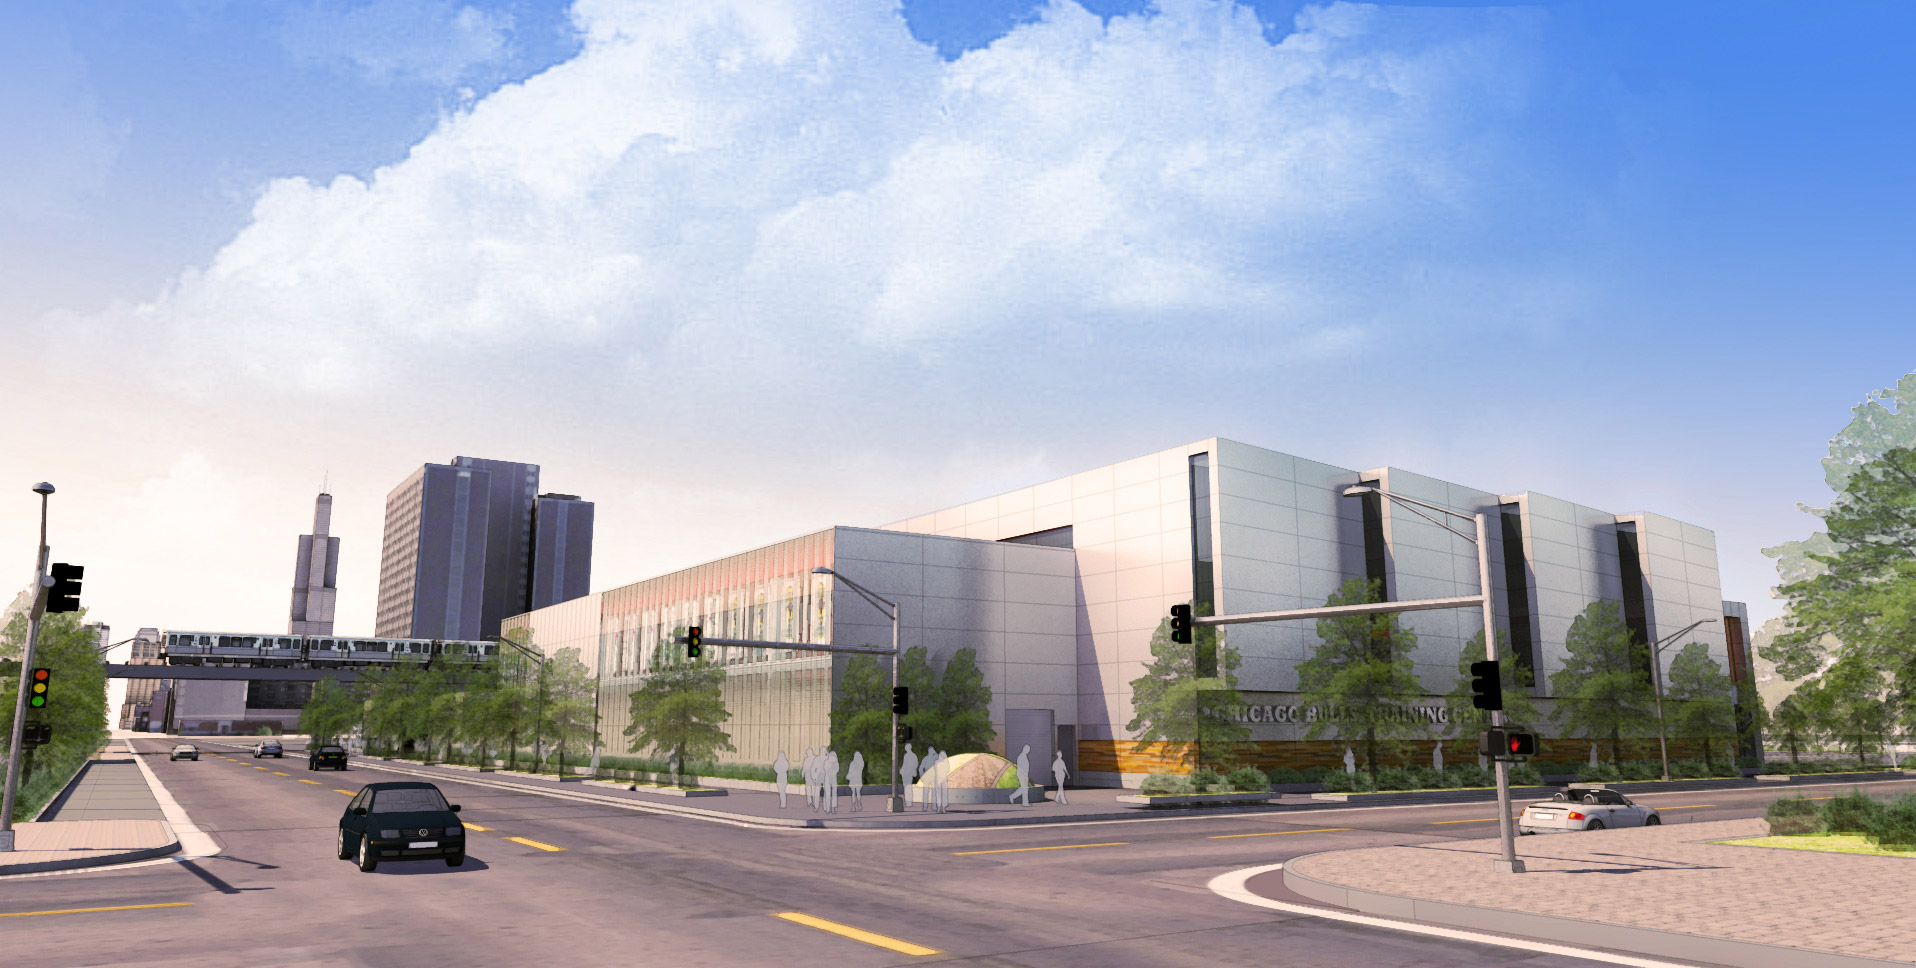 Renderings of the Bulls' practice facility